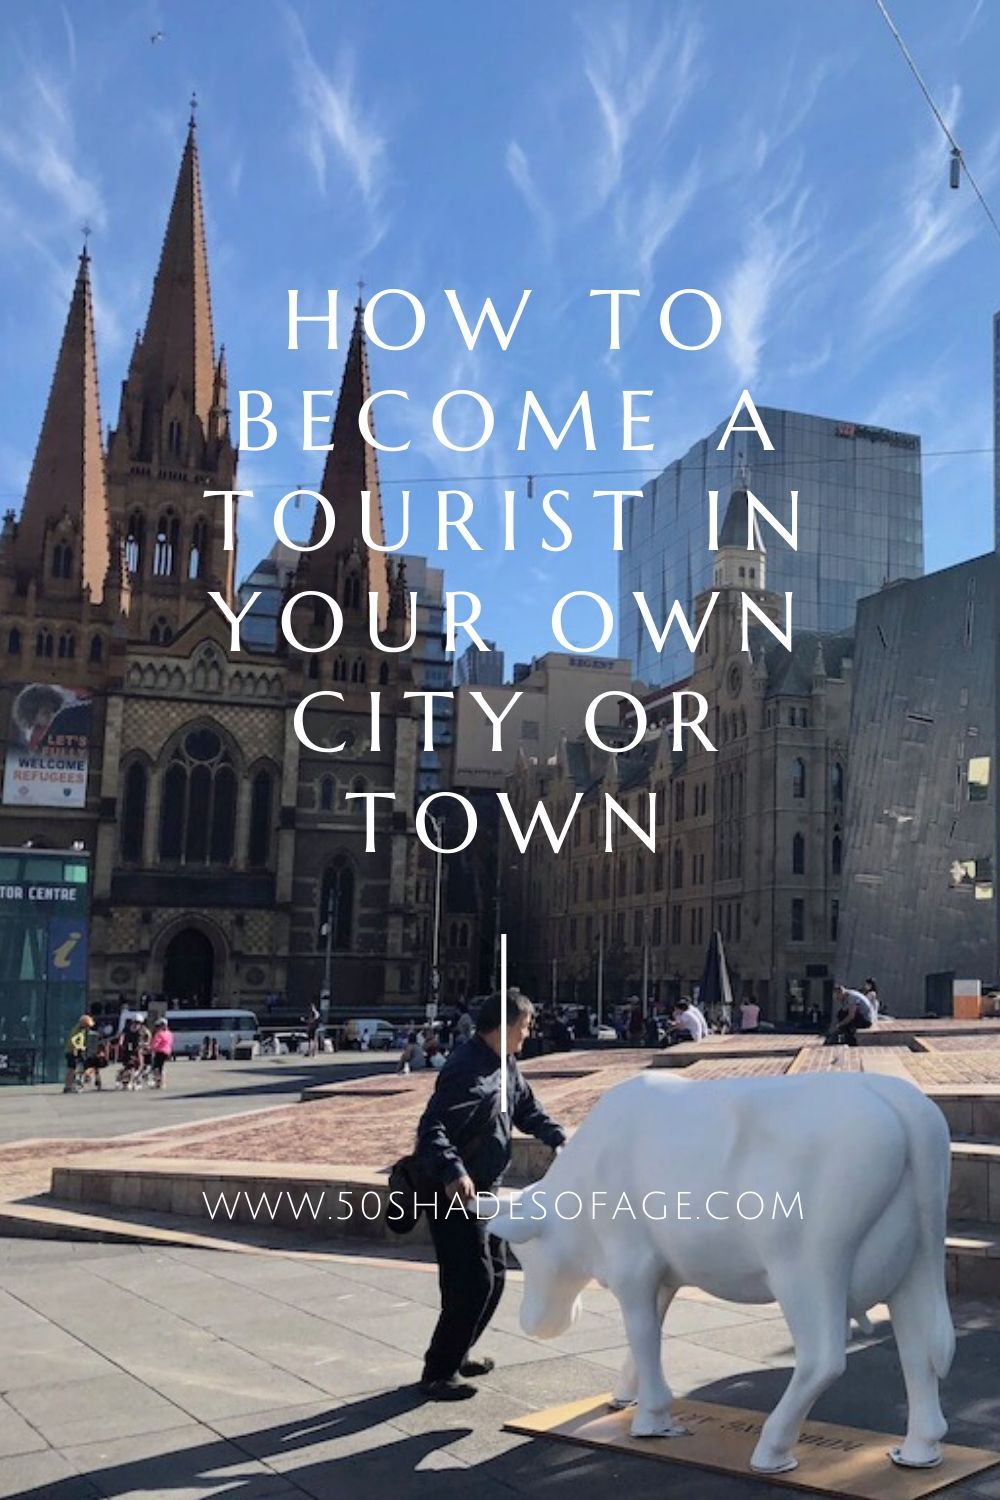 How To Become A Tourist In Your Own Town Or City